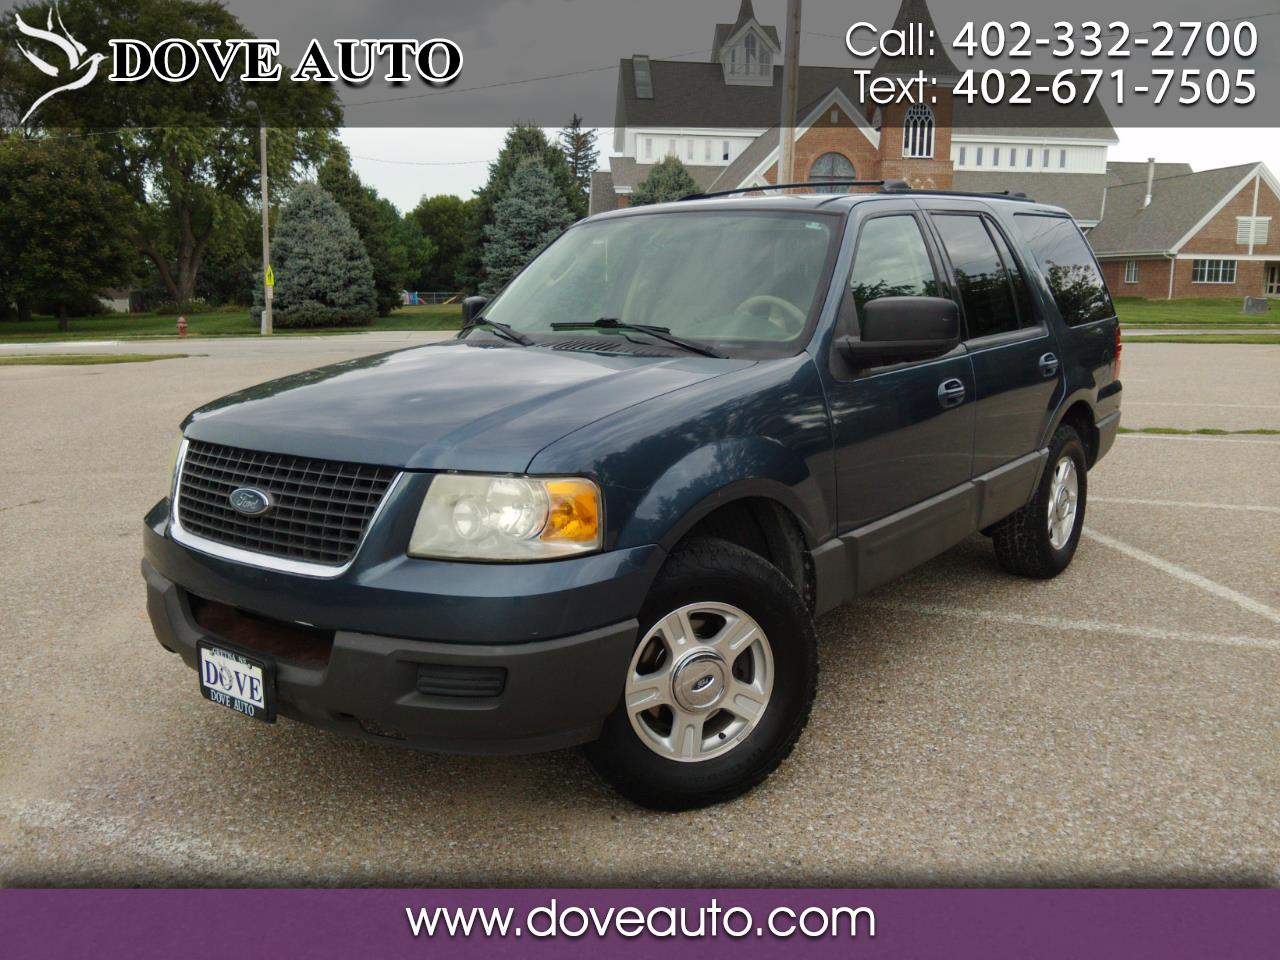 2003 Ford Expedition 4.6L XLT Popular